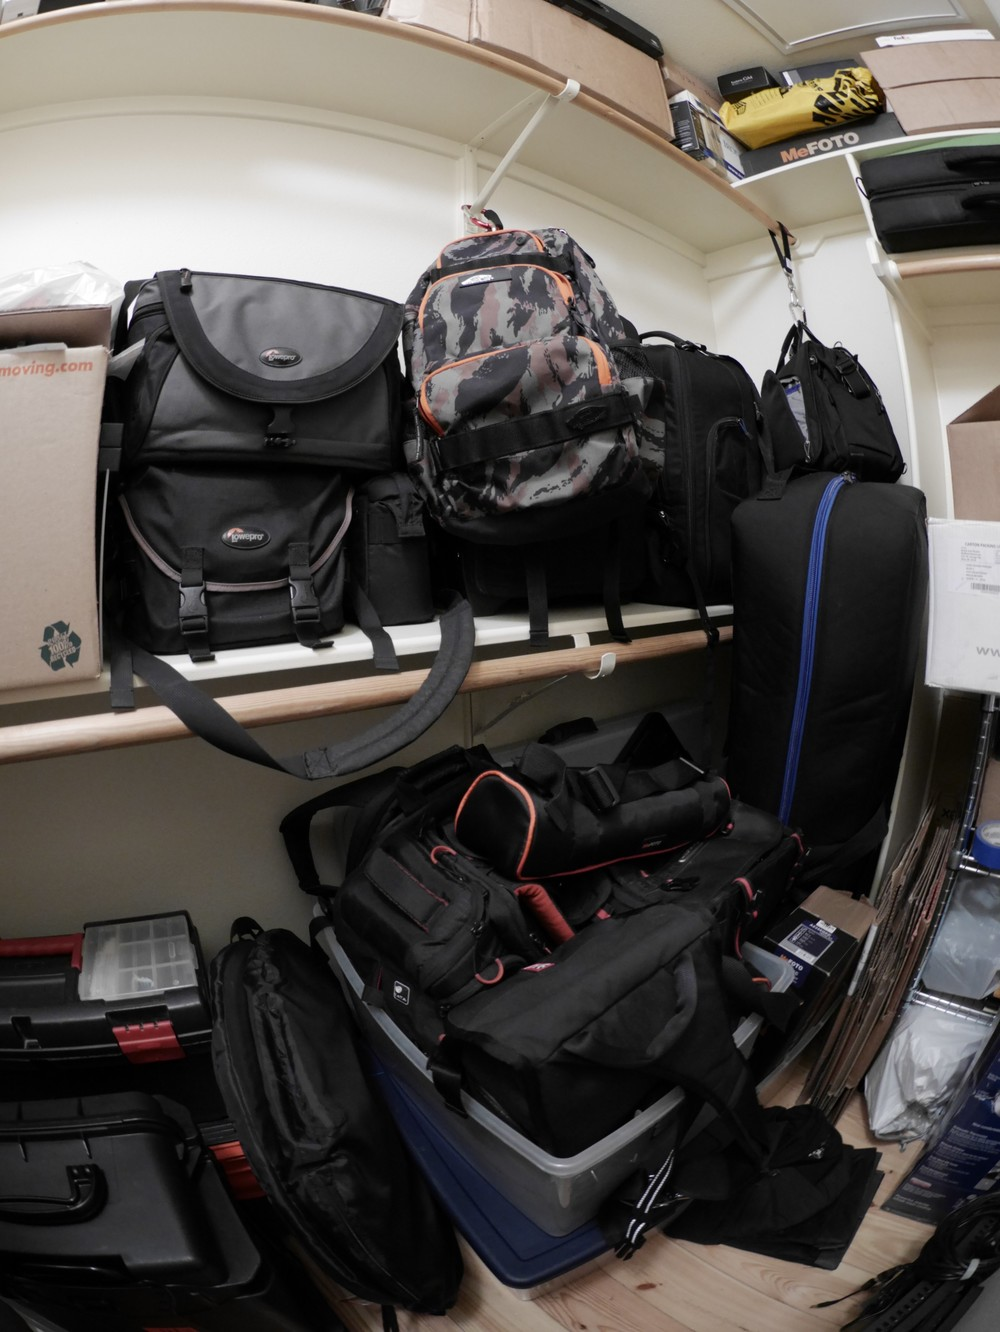 With over 40 camera bags, my obsession is real but I'd be happy with just a few bags that work.